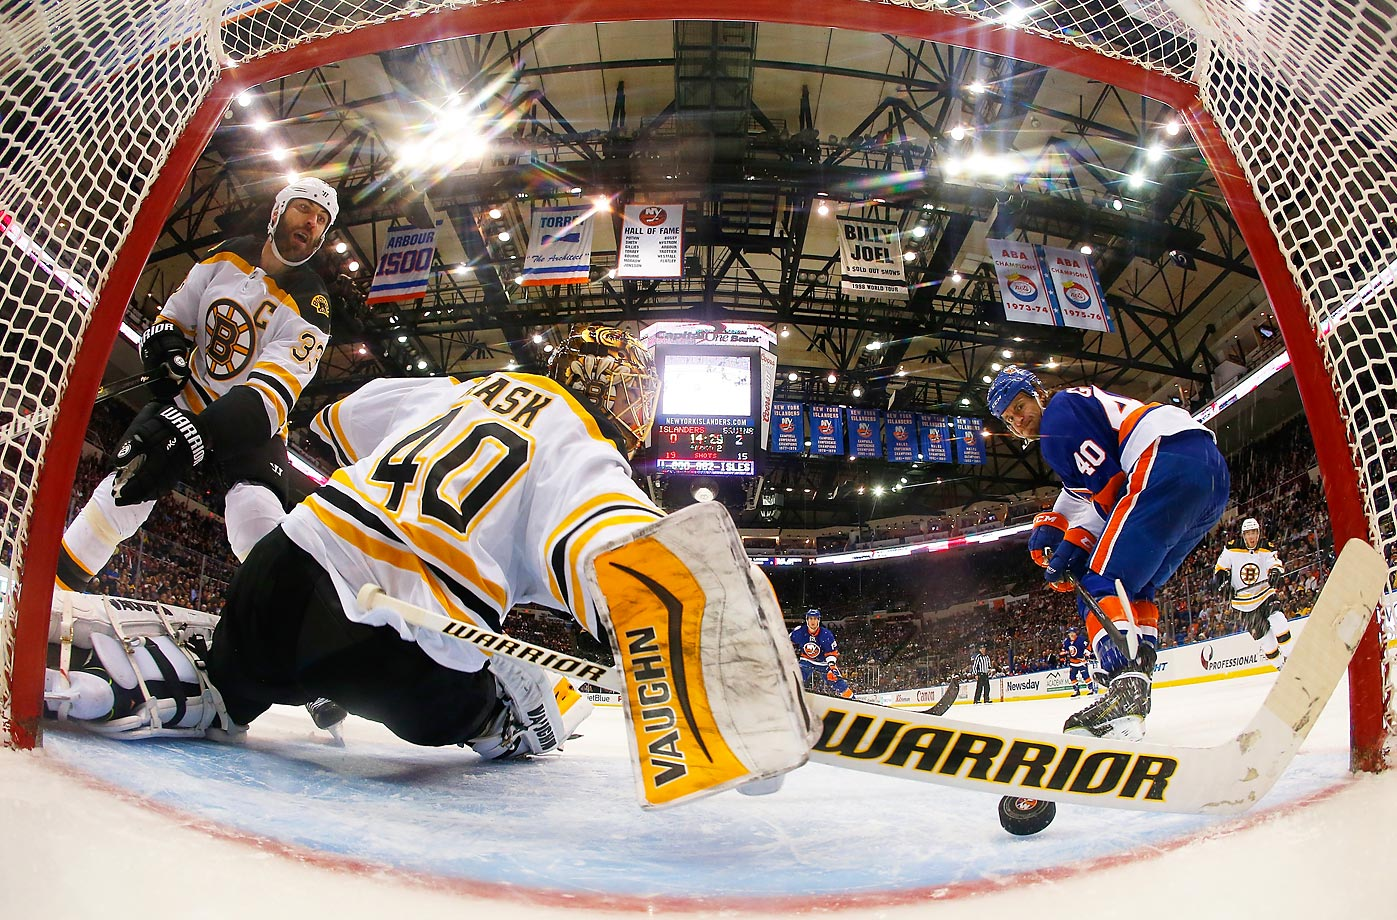 Boston Bruins goalie Tuukka Rask makes a stick save on a shot from Michael Grabner of the New York Islanders.